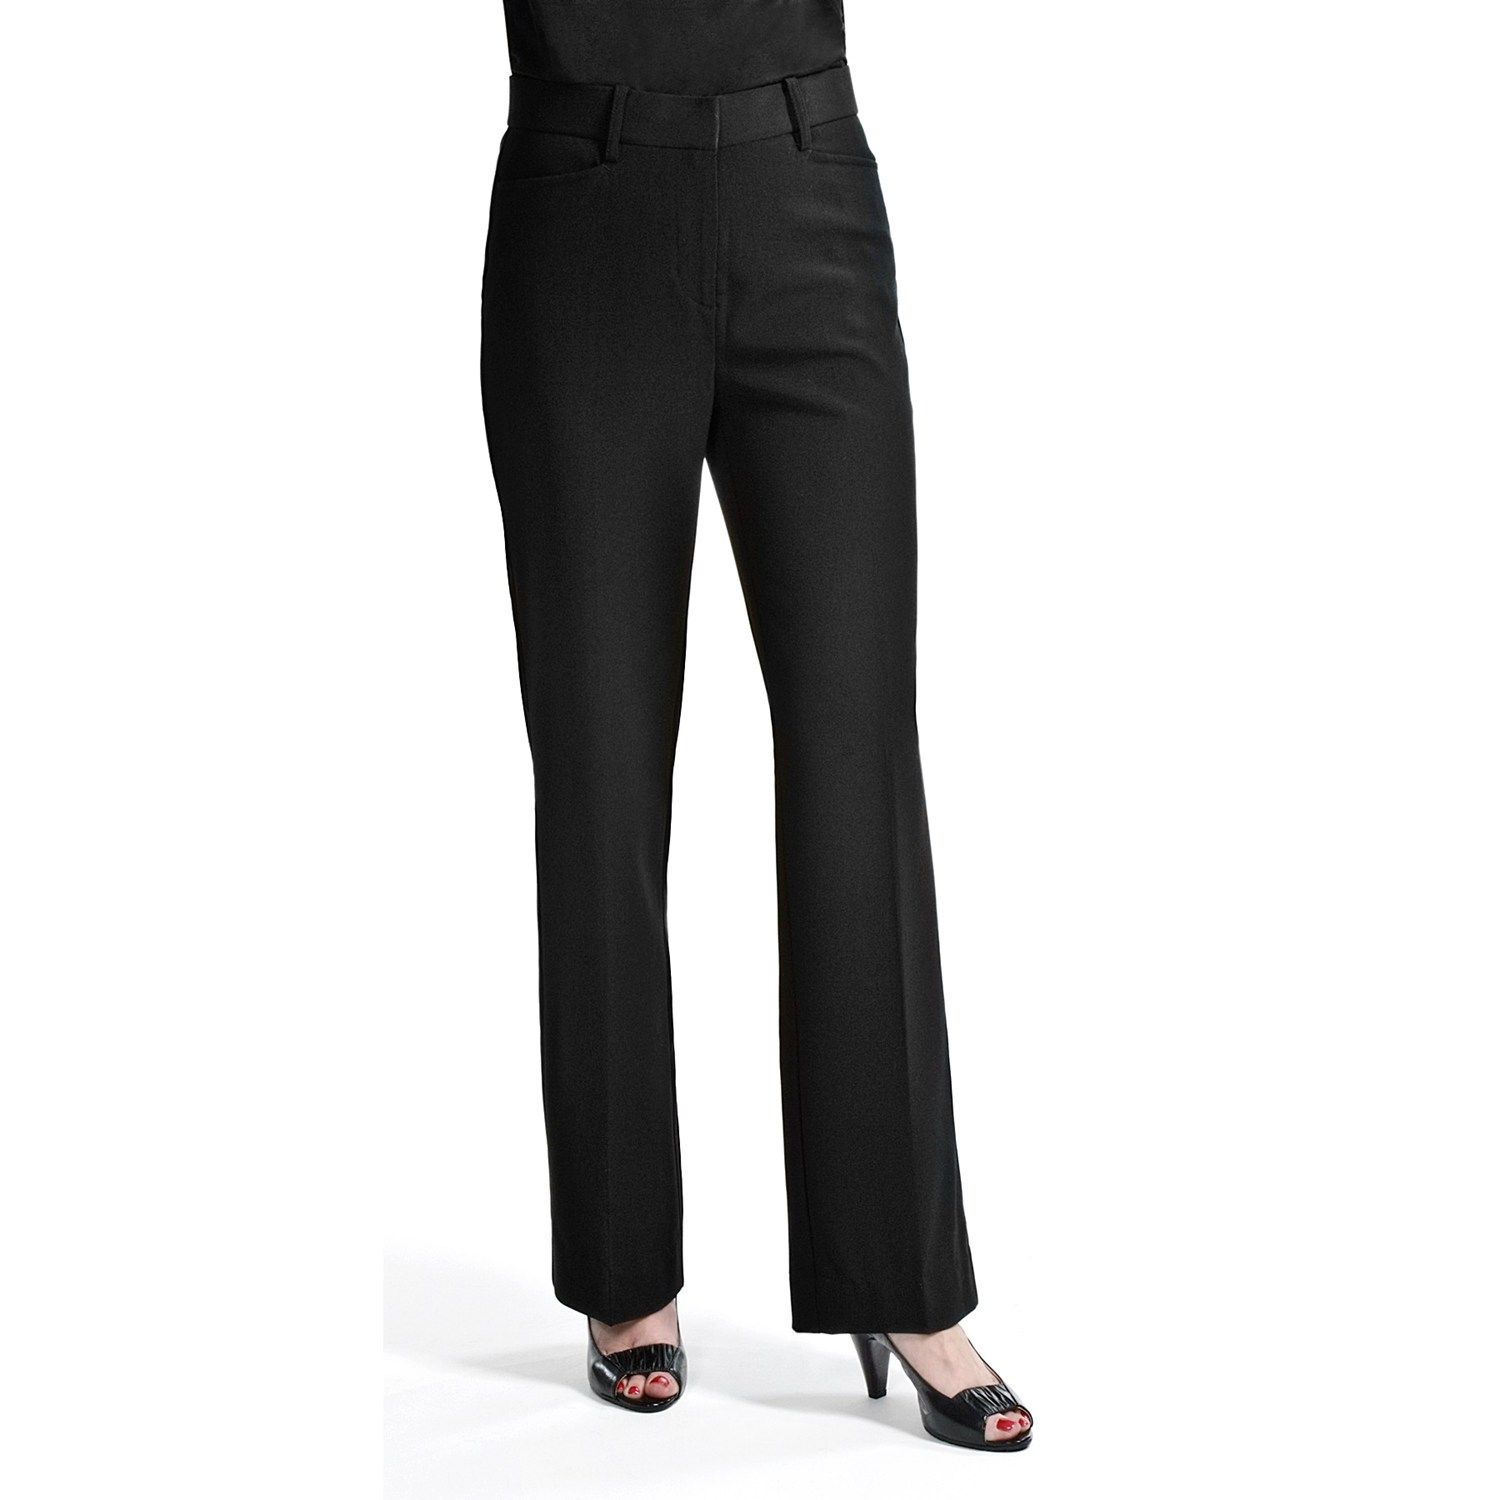 1000  images about Dress Pants on Pinterest | Shops, Women's dress ...